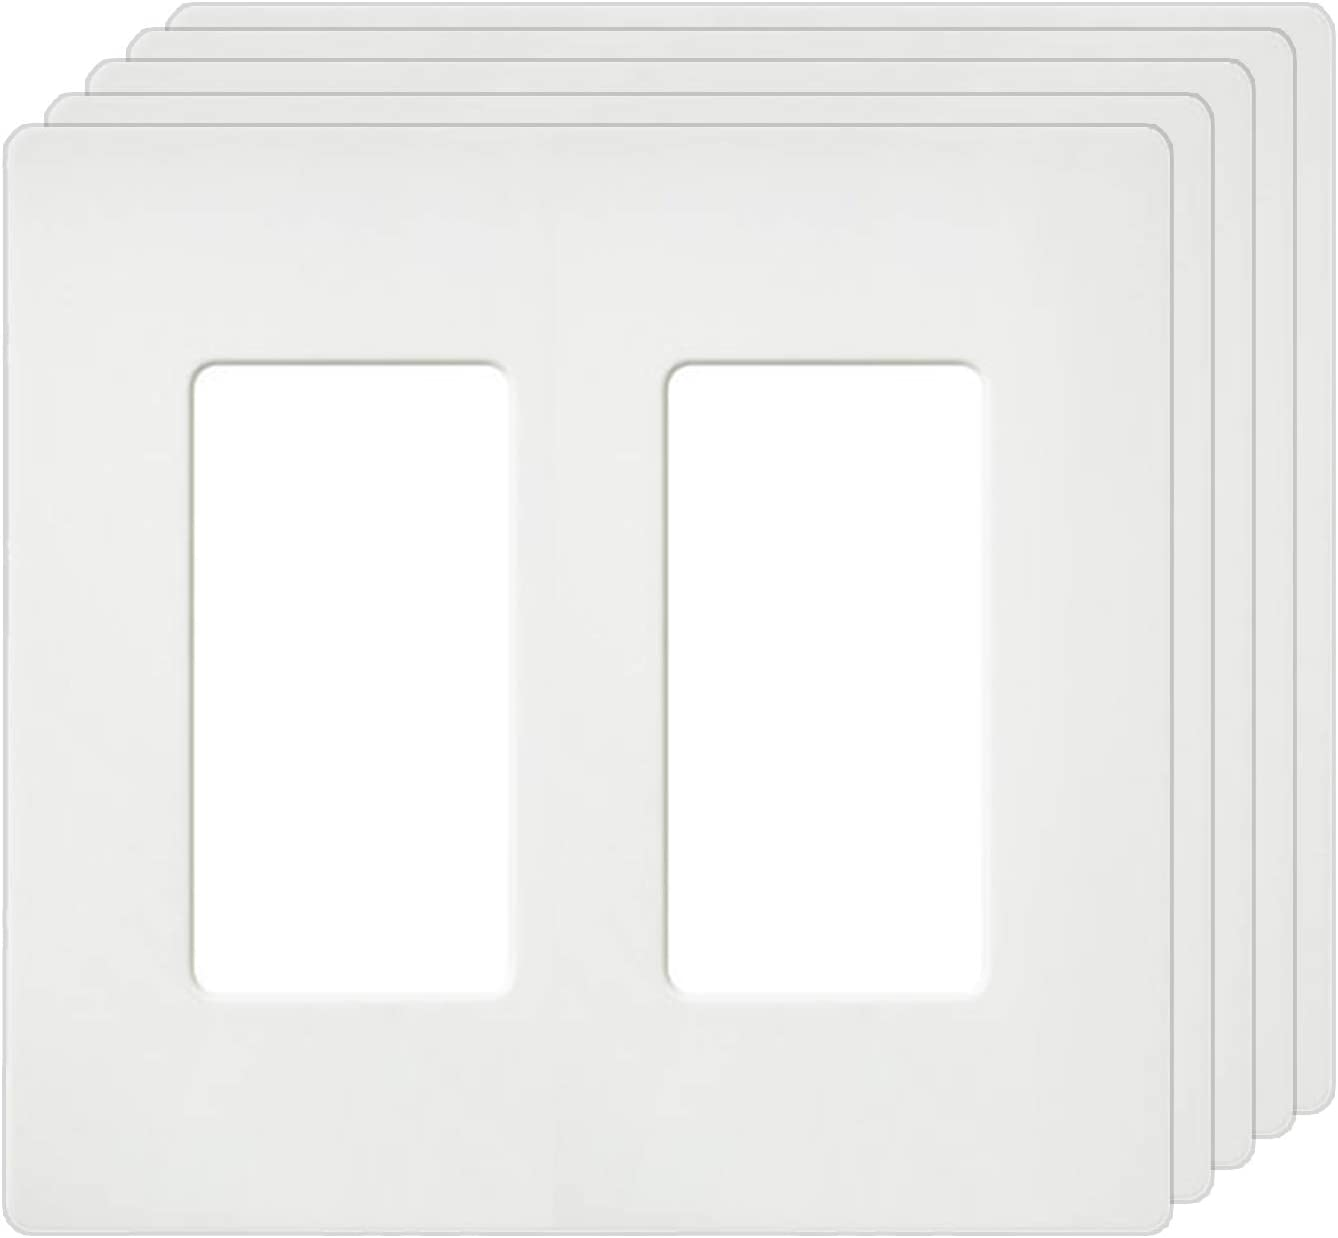 """[5 Pack] BESTTEN 2-Gang Screwless Wall Plate, USWP4 White Series, Decorator Outlet Cover, H4.69"""" x L4.73"""", for Light Switch, Dimmer, USB, GFCI, Receptacle, UL Listed"""